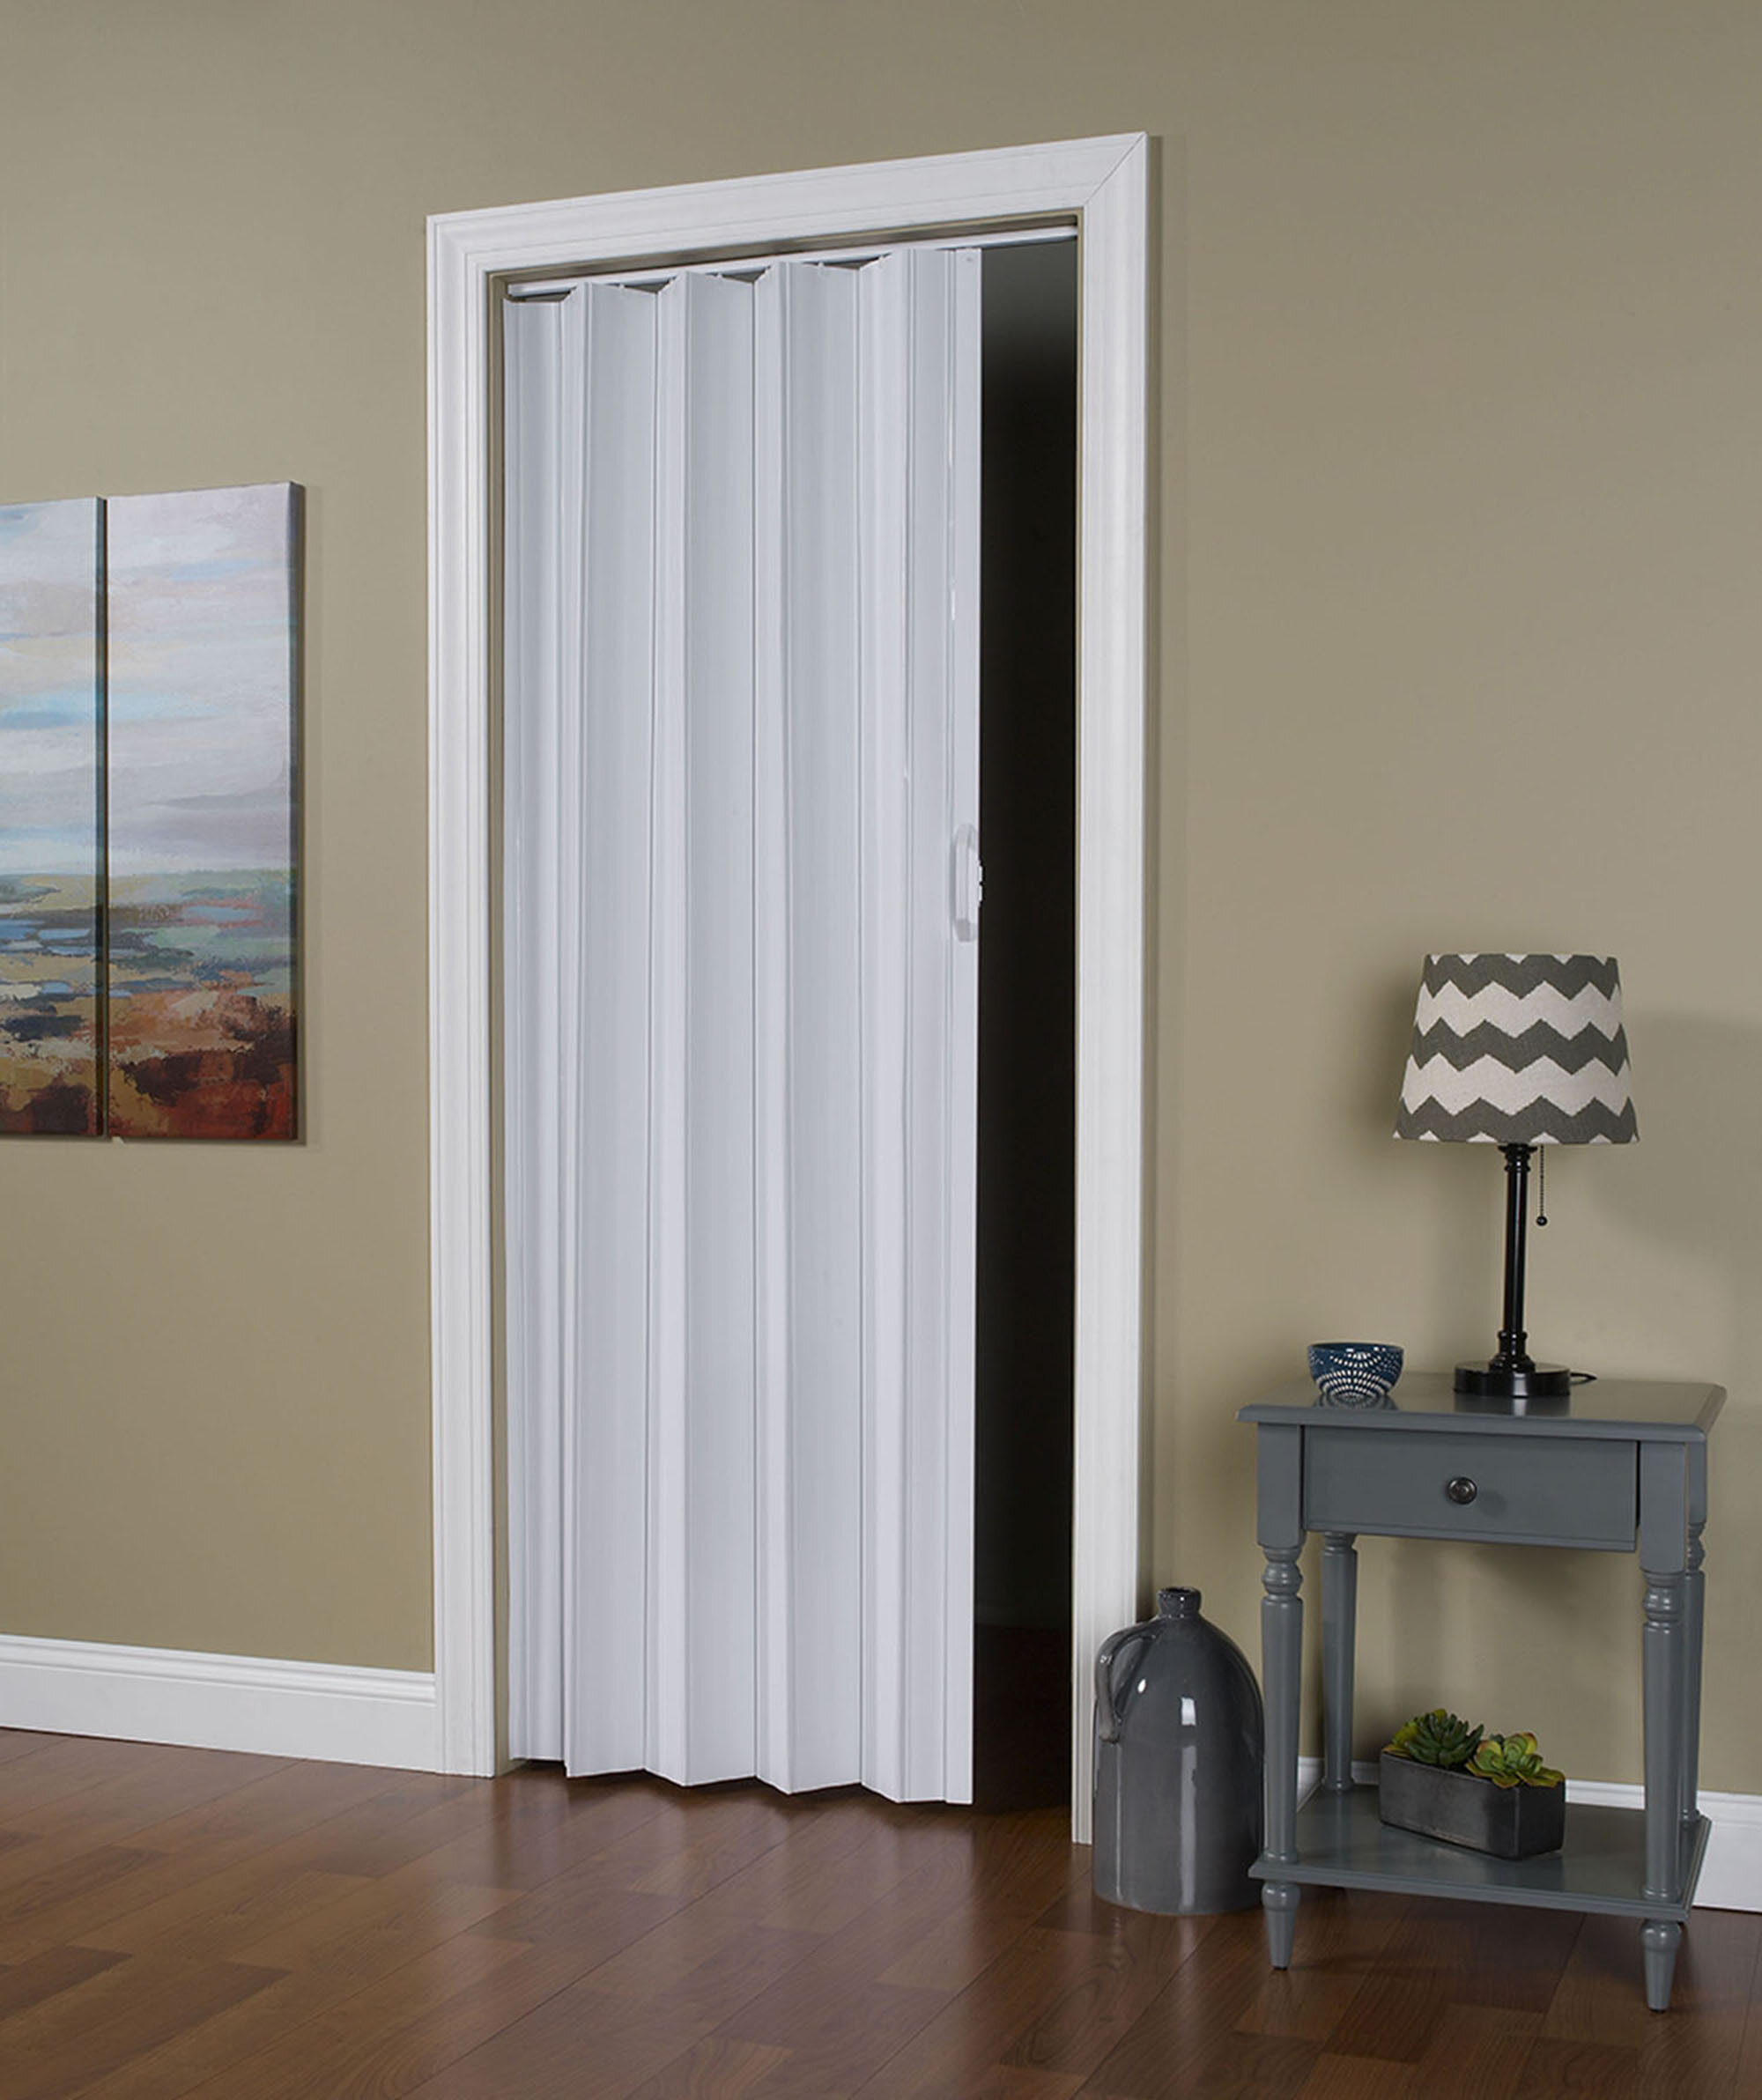 LTL Accordion Doors Homestyle Vinyl Accordion Interior Door u0026 Reviews | Wayfair & LTL Accordion Doors Homestyle Vinyl Accordion Interior Door ...